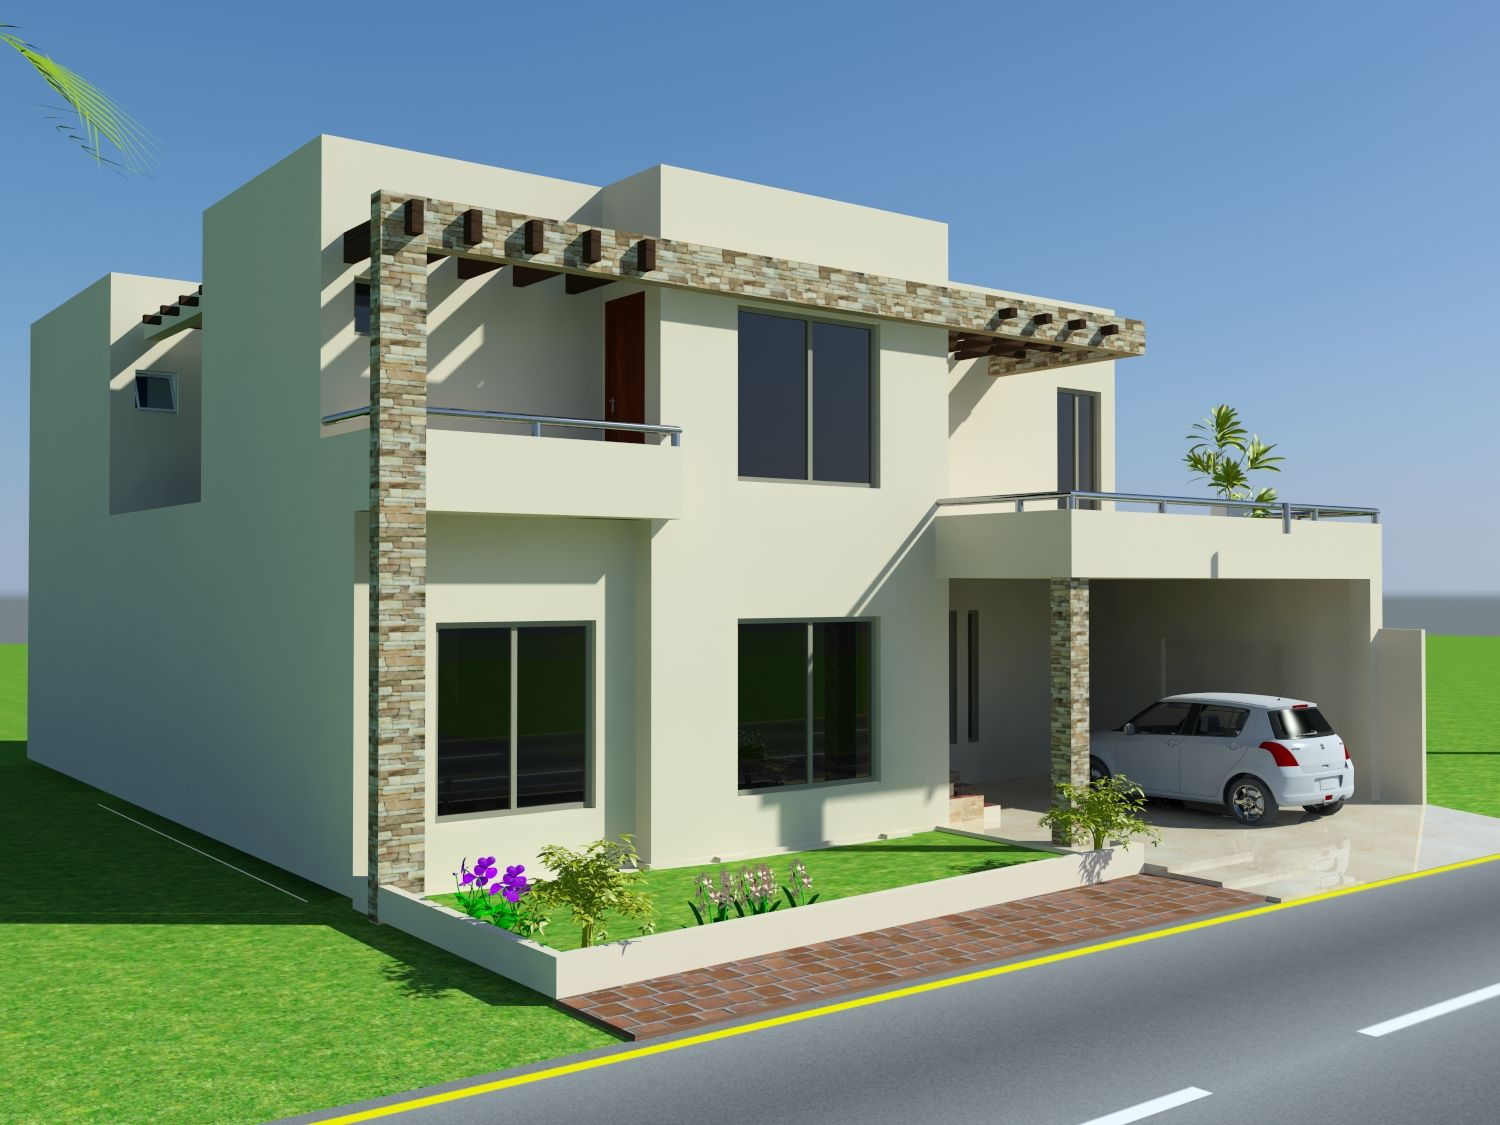 10 marla house design mian wali pakistan Construction cost of 5 marla house